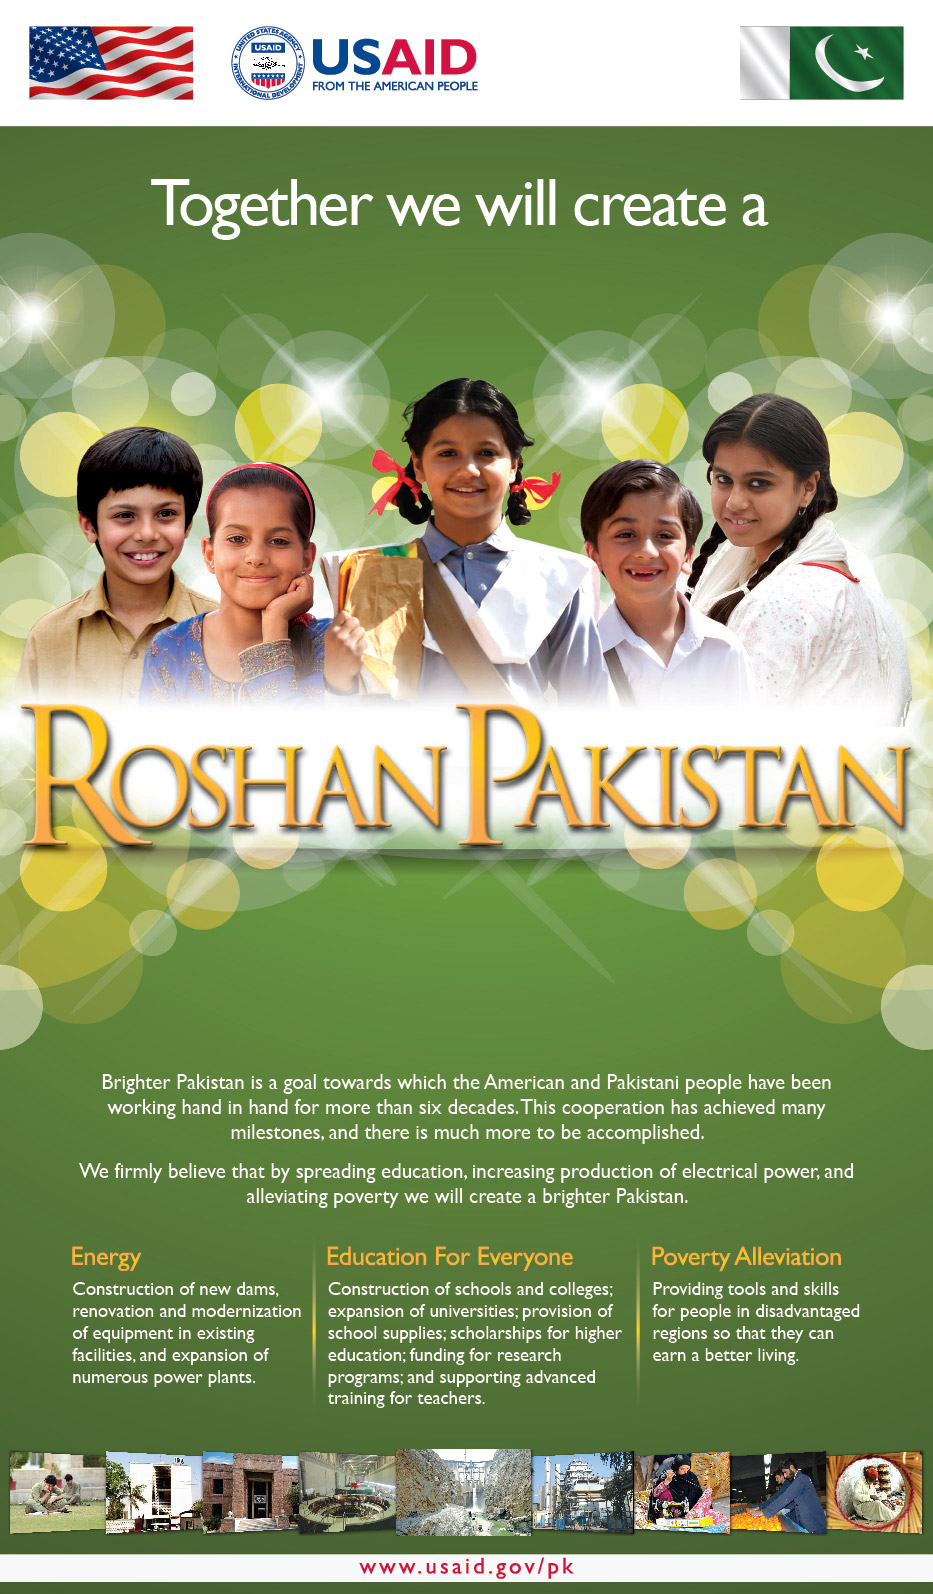 Together, we will create a Roshan Pakistan